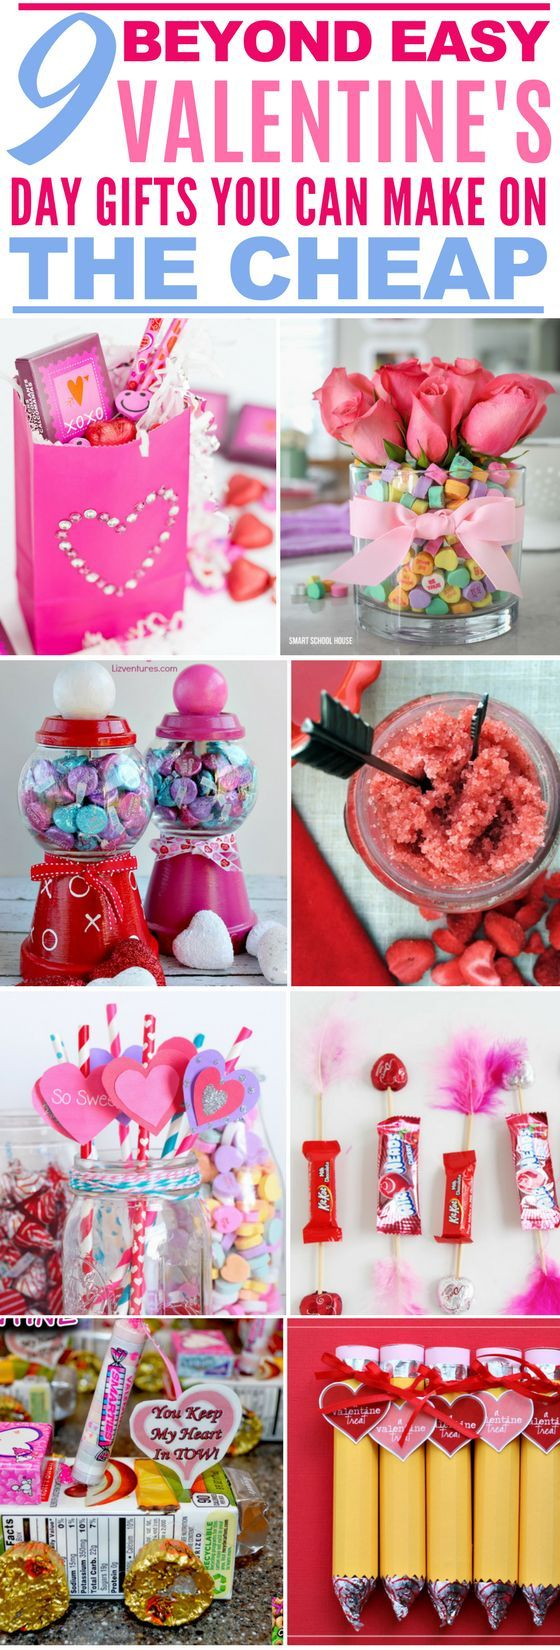 These 9 Valentine's Day Gifts Are The CUTEST! I love how easy they are to make too! Definitely saving for later. : )